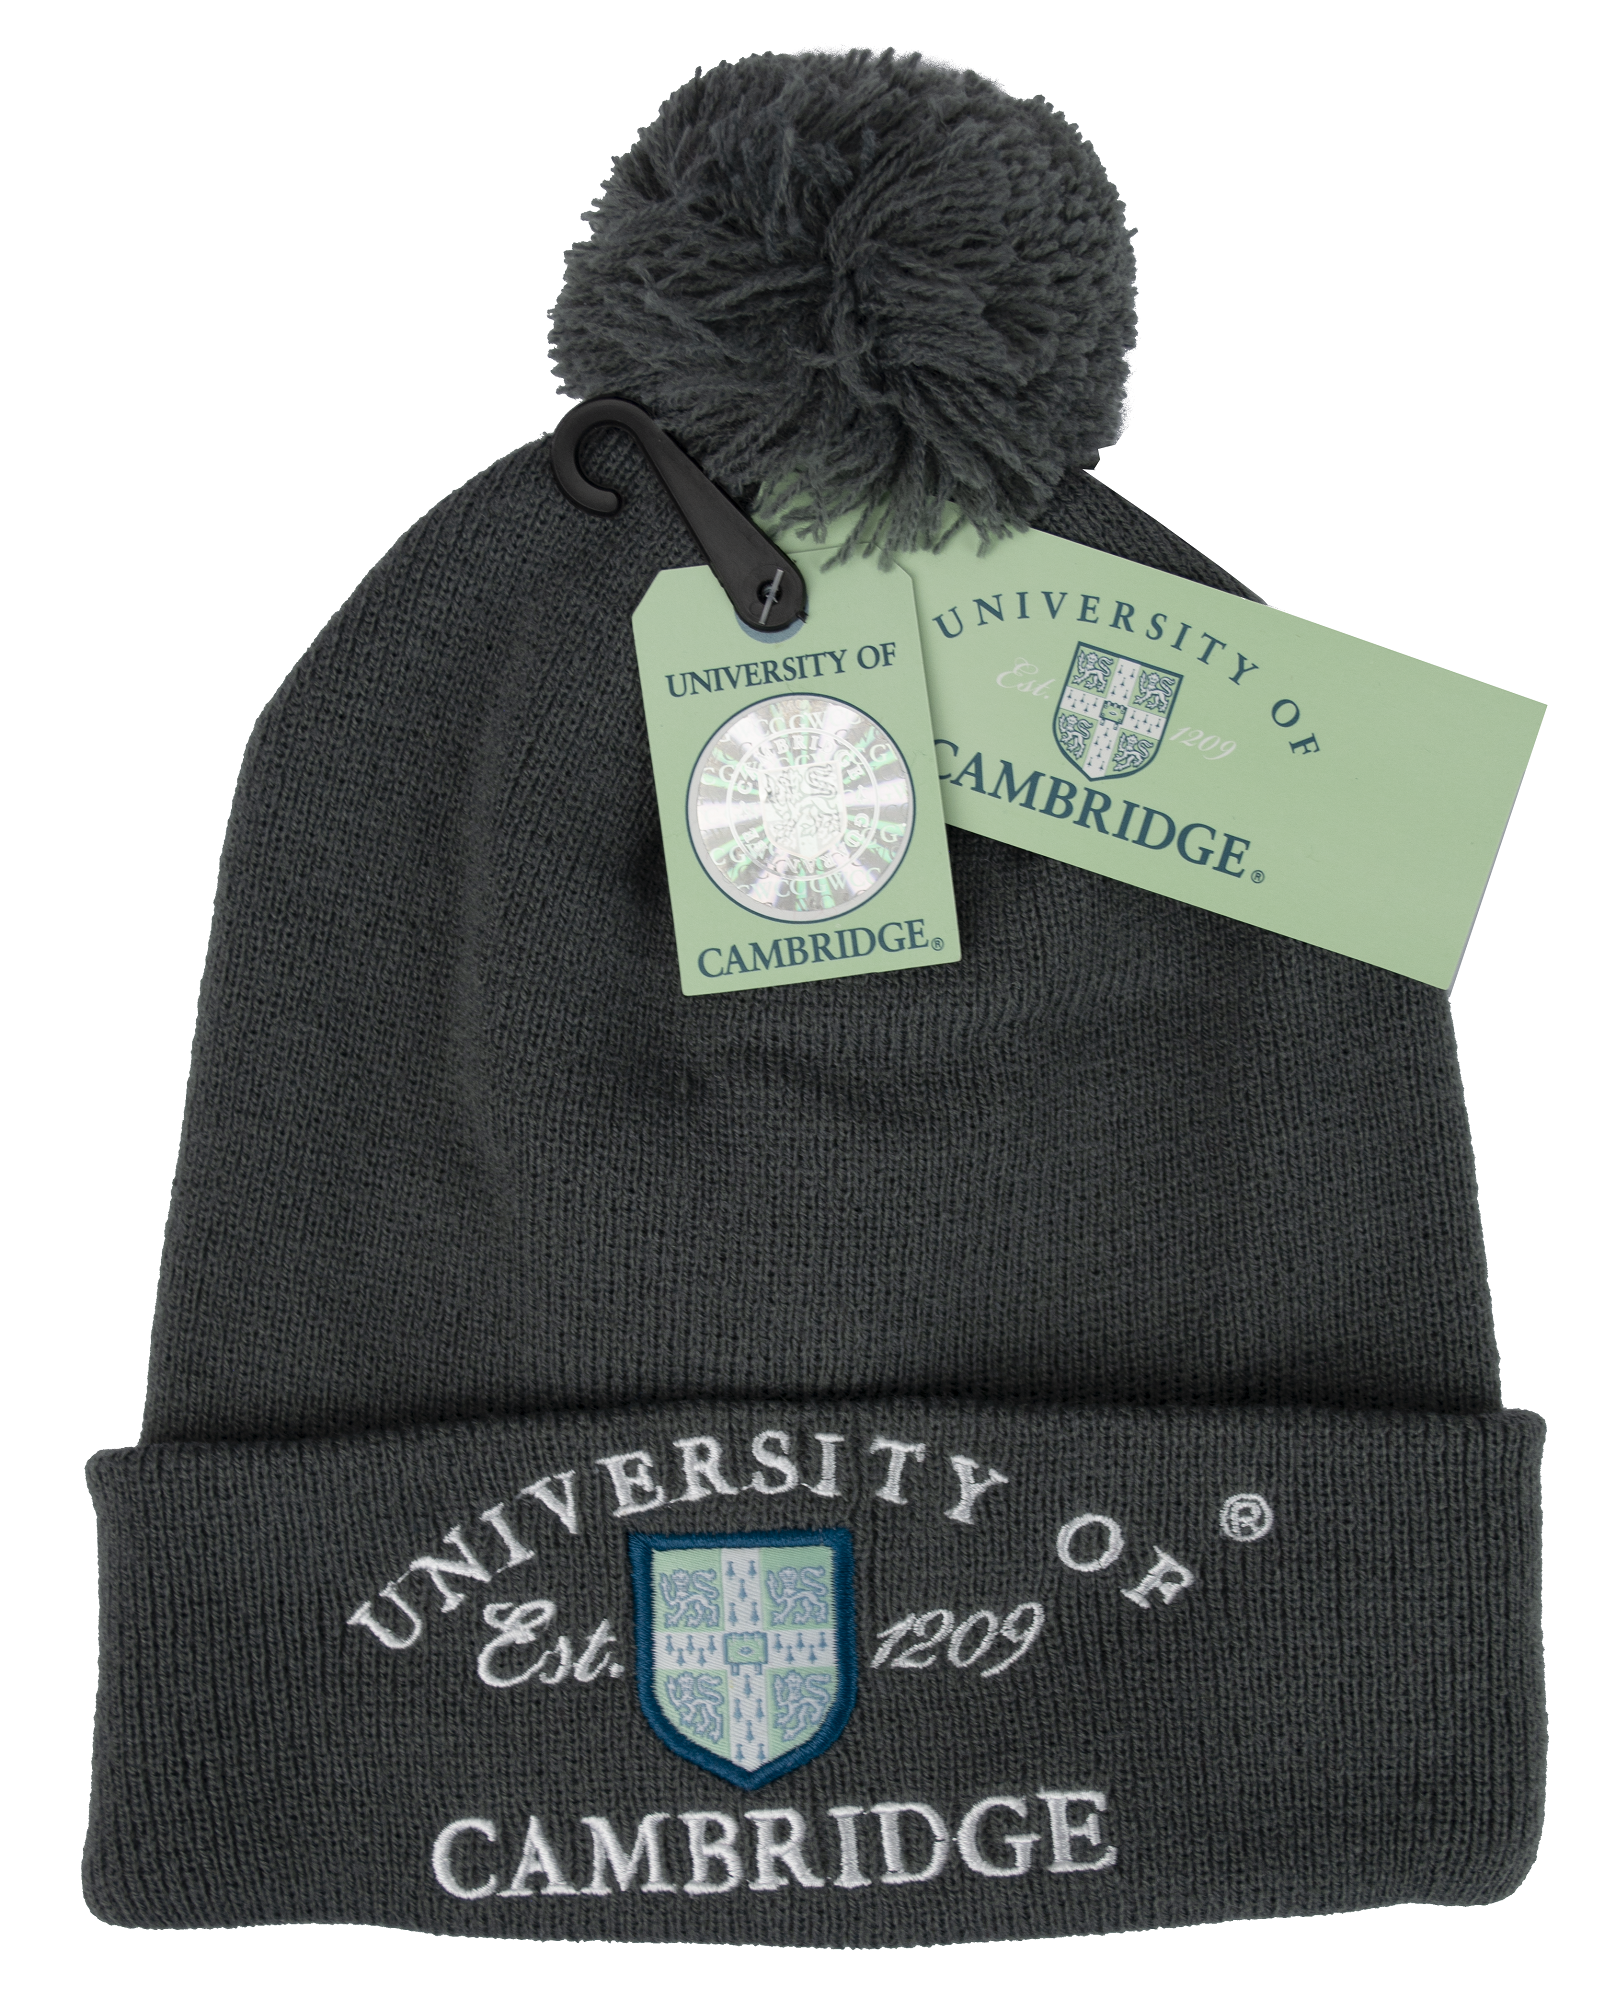 Licensed Cambridge University Pom Pom Beanie Ski Hat Charcoal Colour - British Heritage Brands